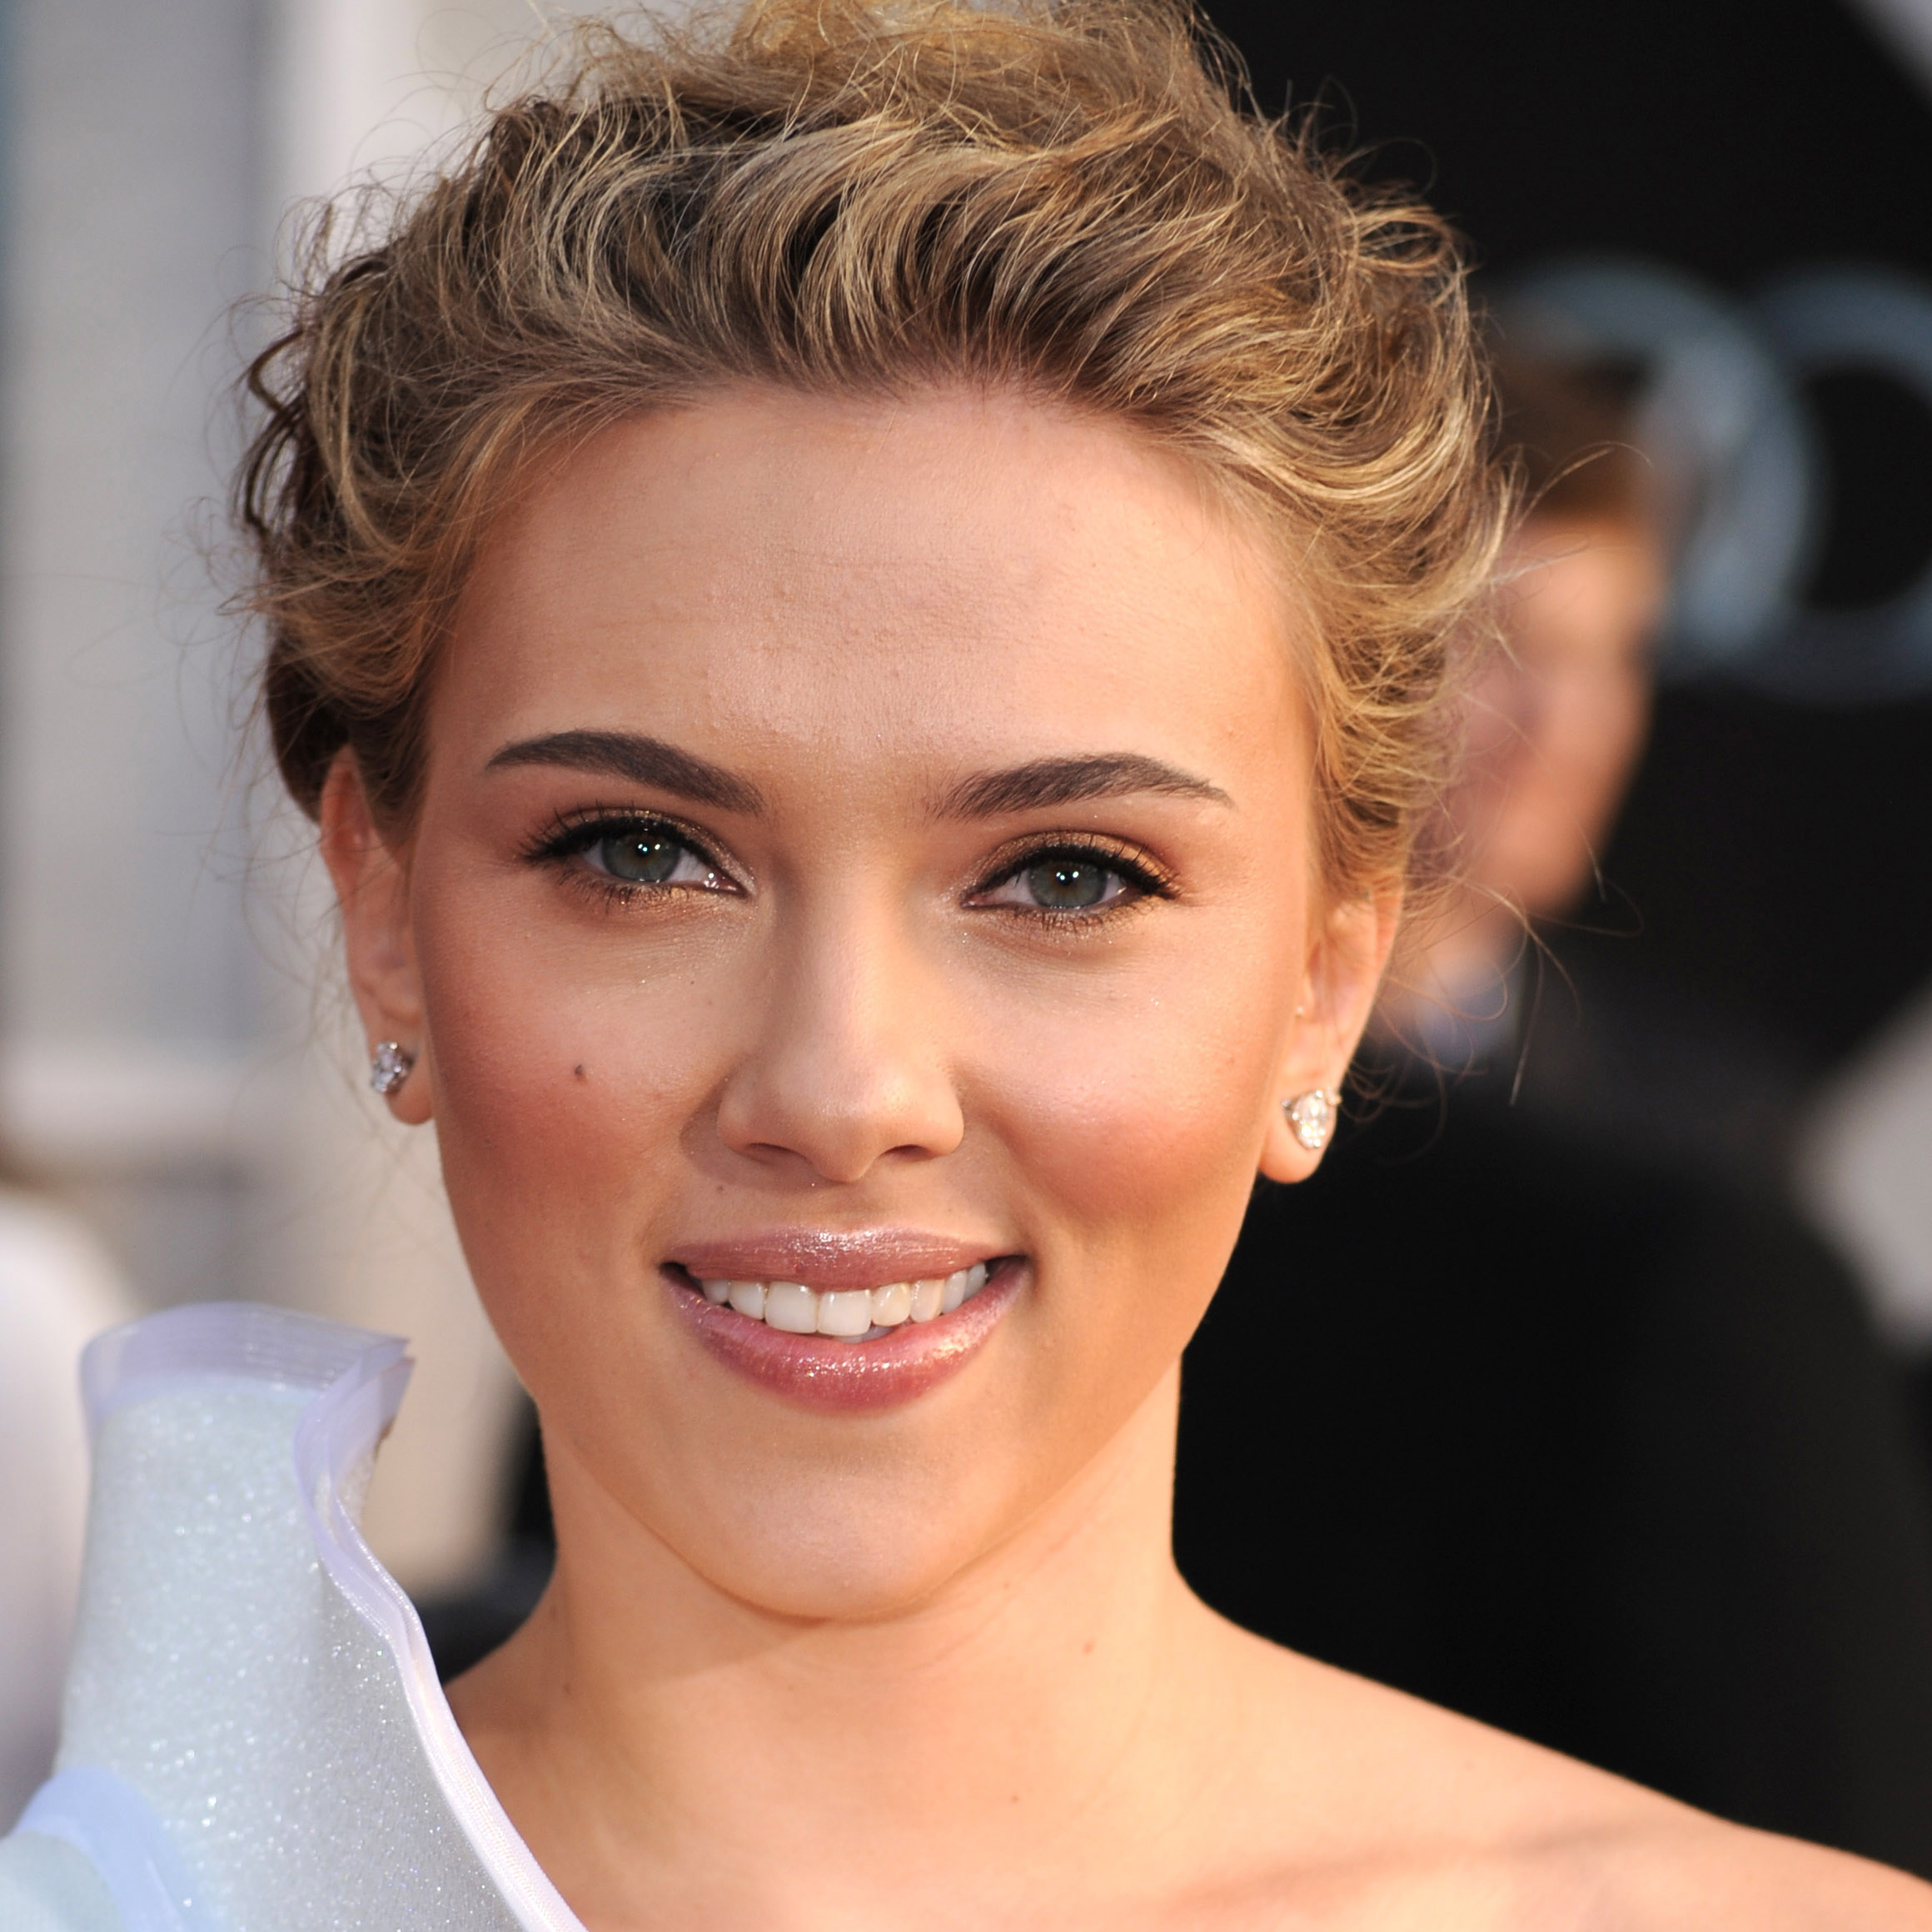 Live Hd Wallpapers For Mobile Samsung Scarlett Johansson Images